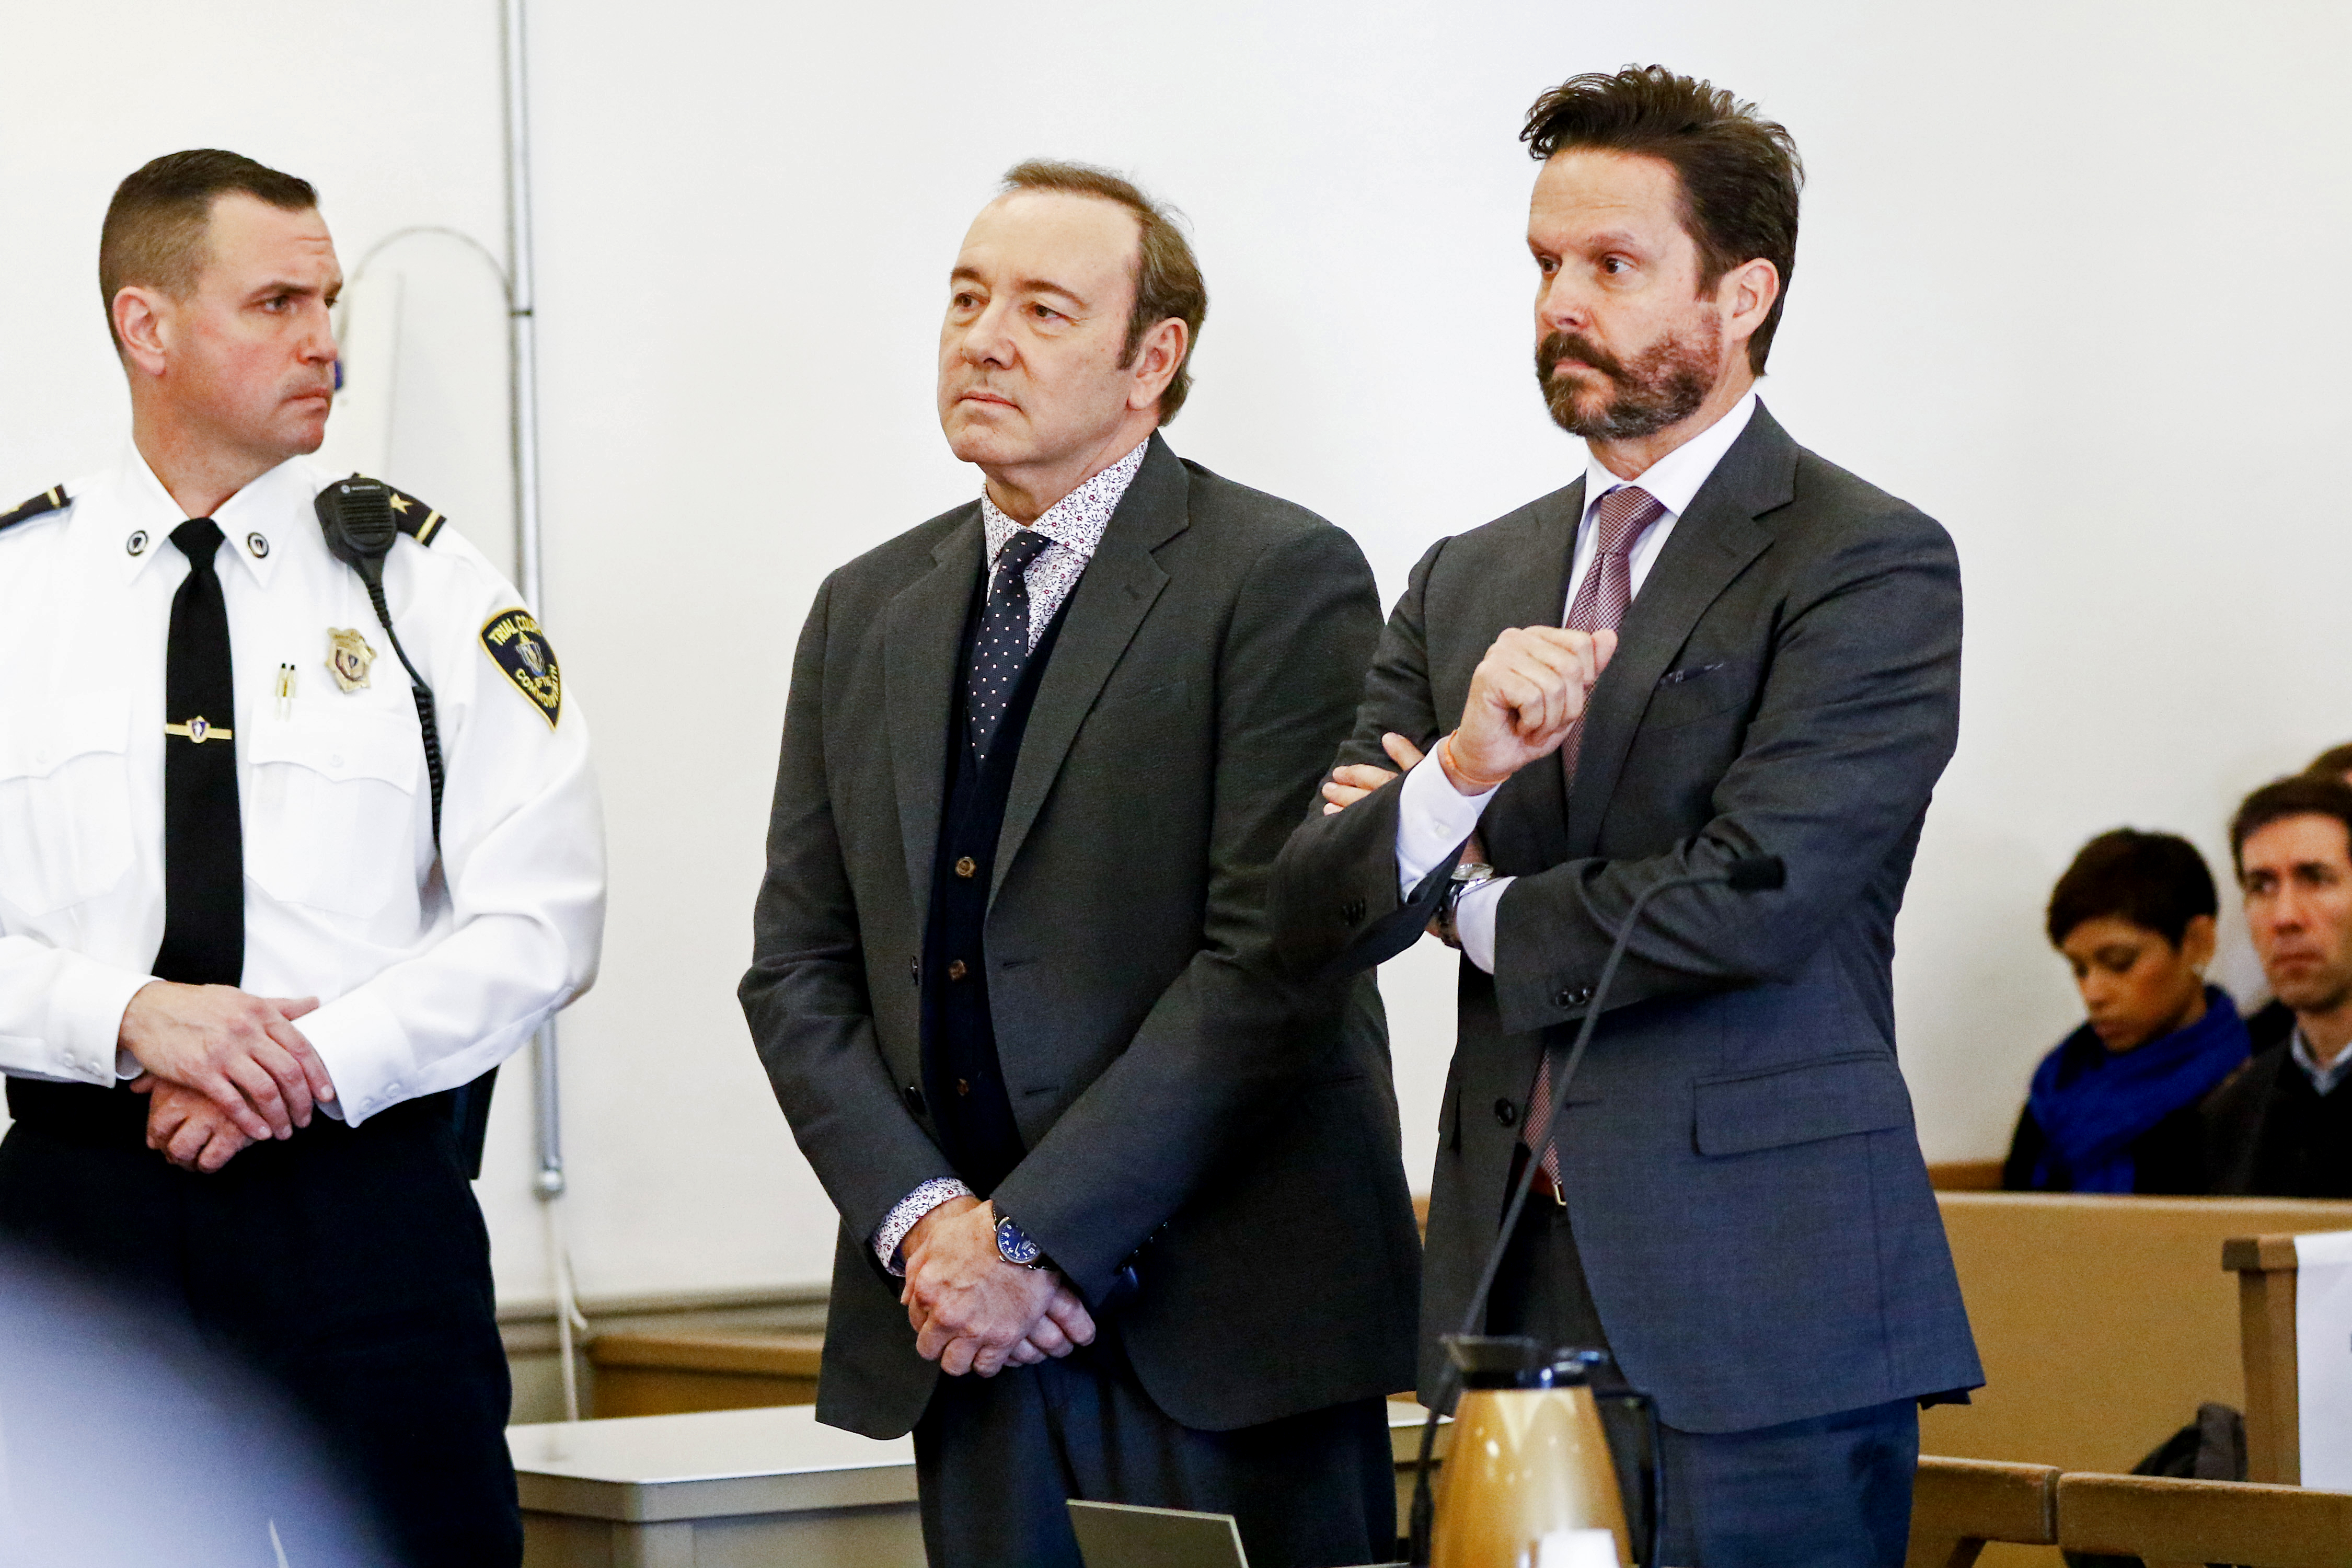 Actor Kevin Spacey (L) attends his arraignment on sexual assault charges with his lawyer Alan Jackson at Nantucket District Court on January 7, 2019 in Nantucket, Massachusetts. (Photo by Nicole Harnishfeger-Pool/Getty Images)